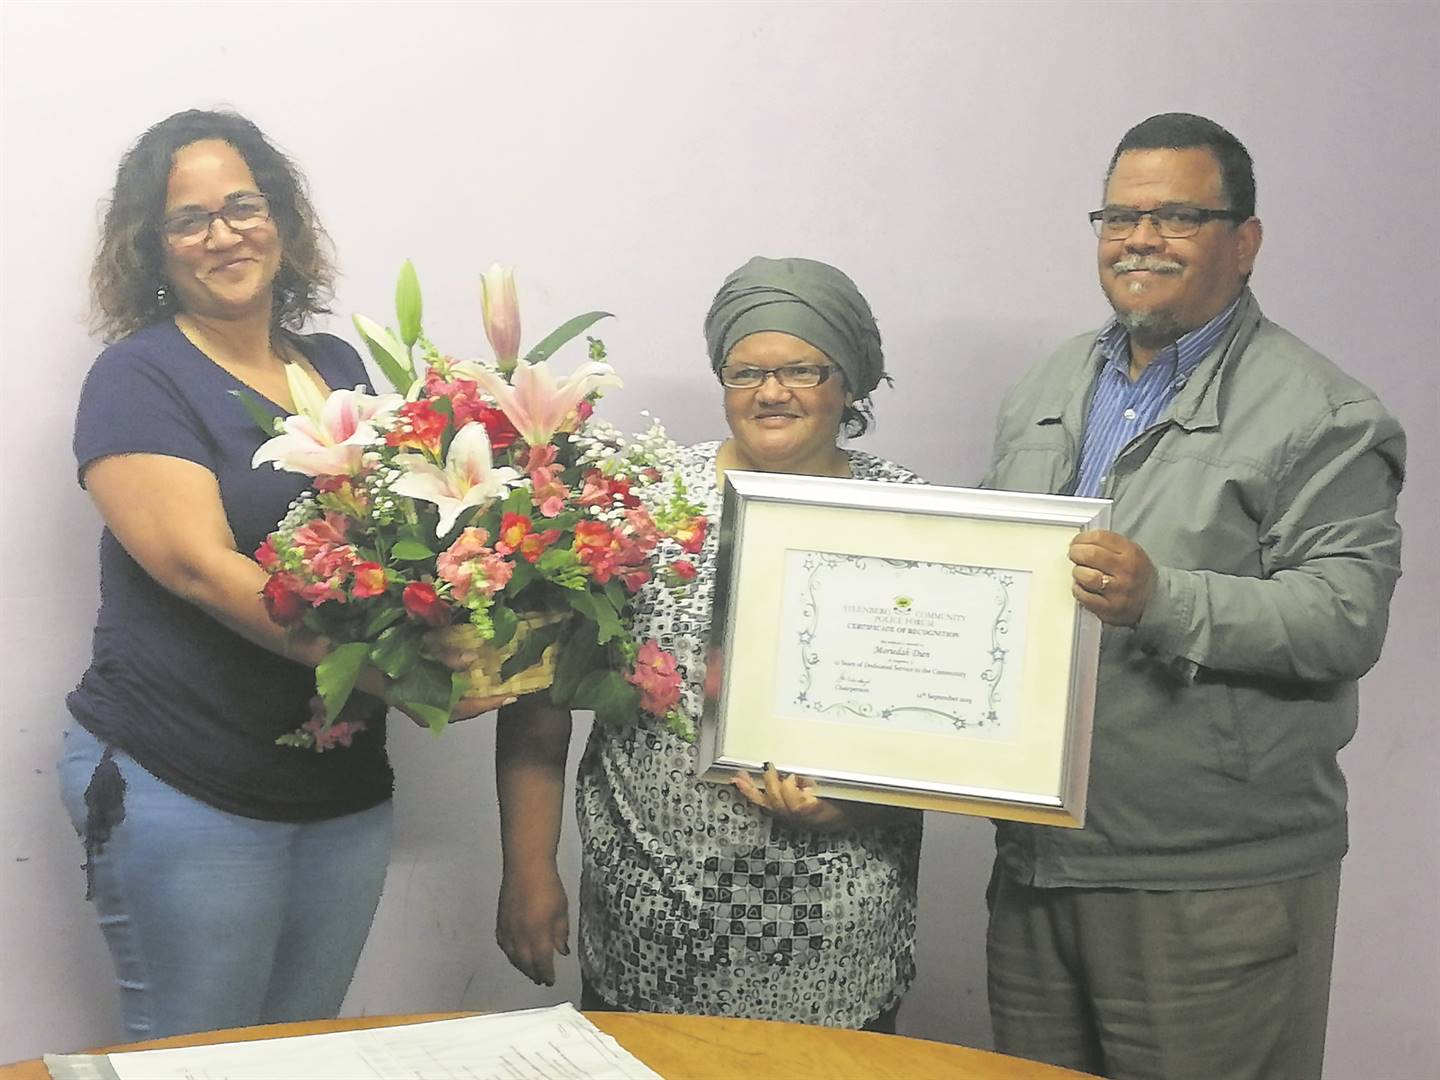 Moeridah Dien (centre) at her farewell as a police reservist, with Steenberg CPF's Beryl Cerff (left) and CPF chair, Gavin Walbrugh (right). PHOTO: Racine Edwardes